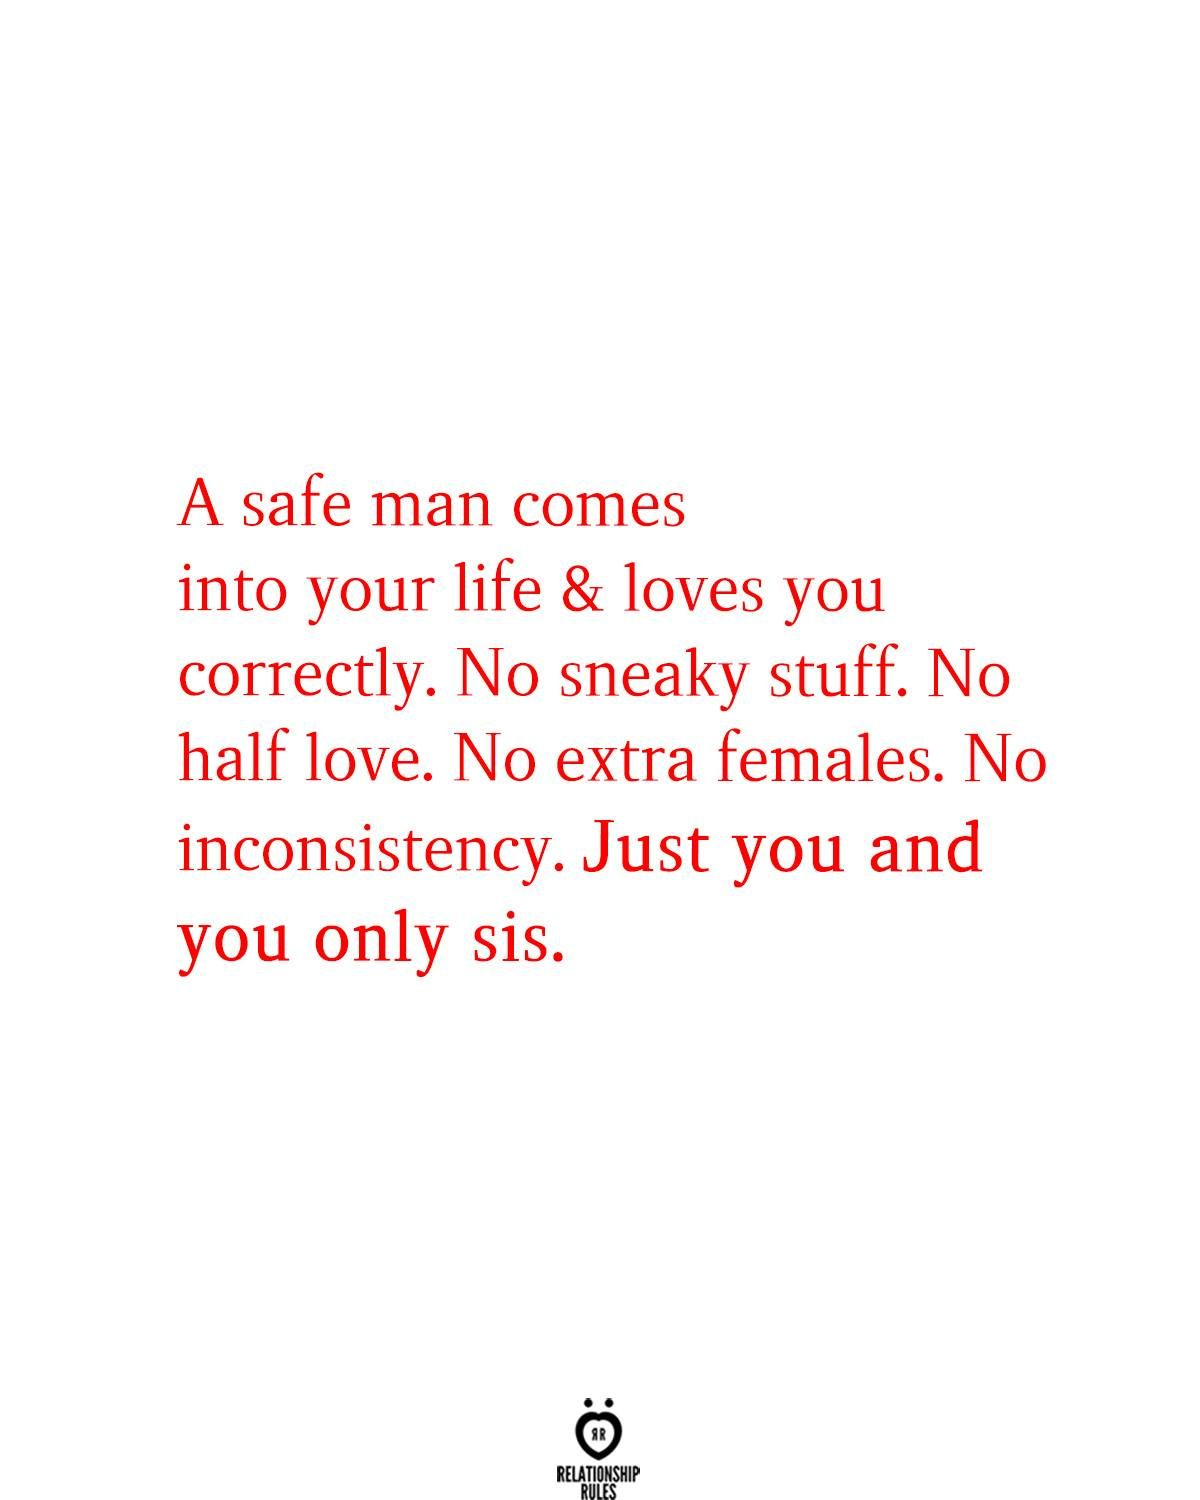 A Safe Man Comes Into Your Life &